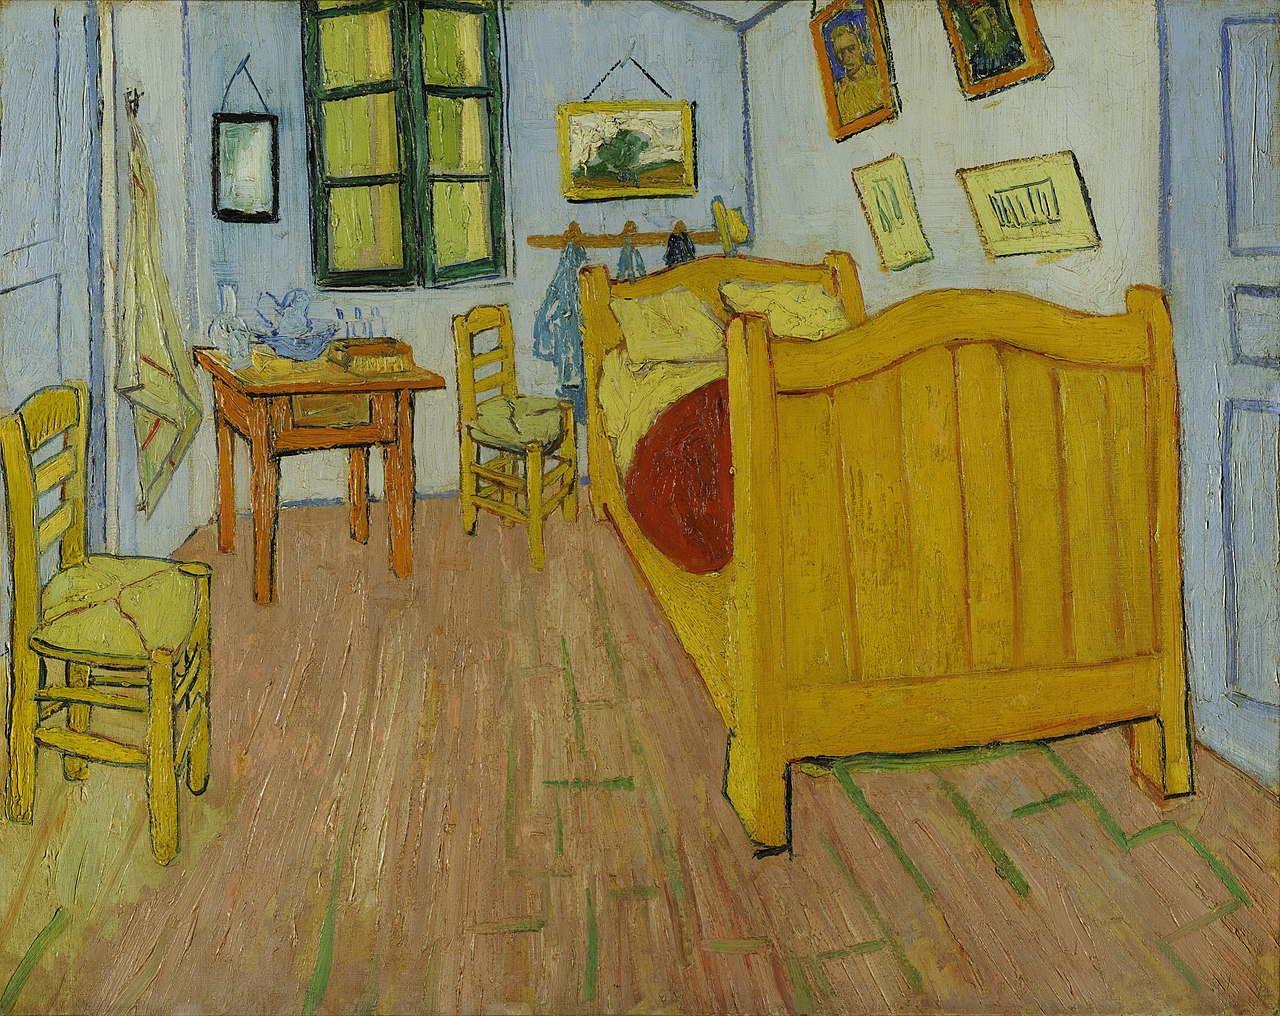 One Point Perspective Example- Vincent Van Gogh, 'La Chambre à Coucher', oil on canvas, Height- 72 cm (28.3 in); Width- 90 cm (35.4 in), image curtesy of Wiki Commons